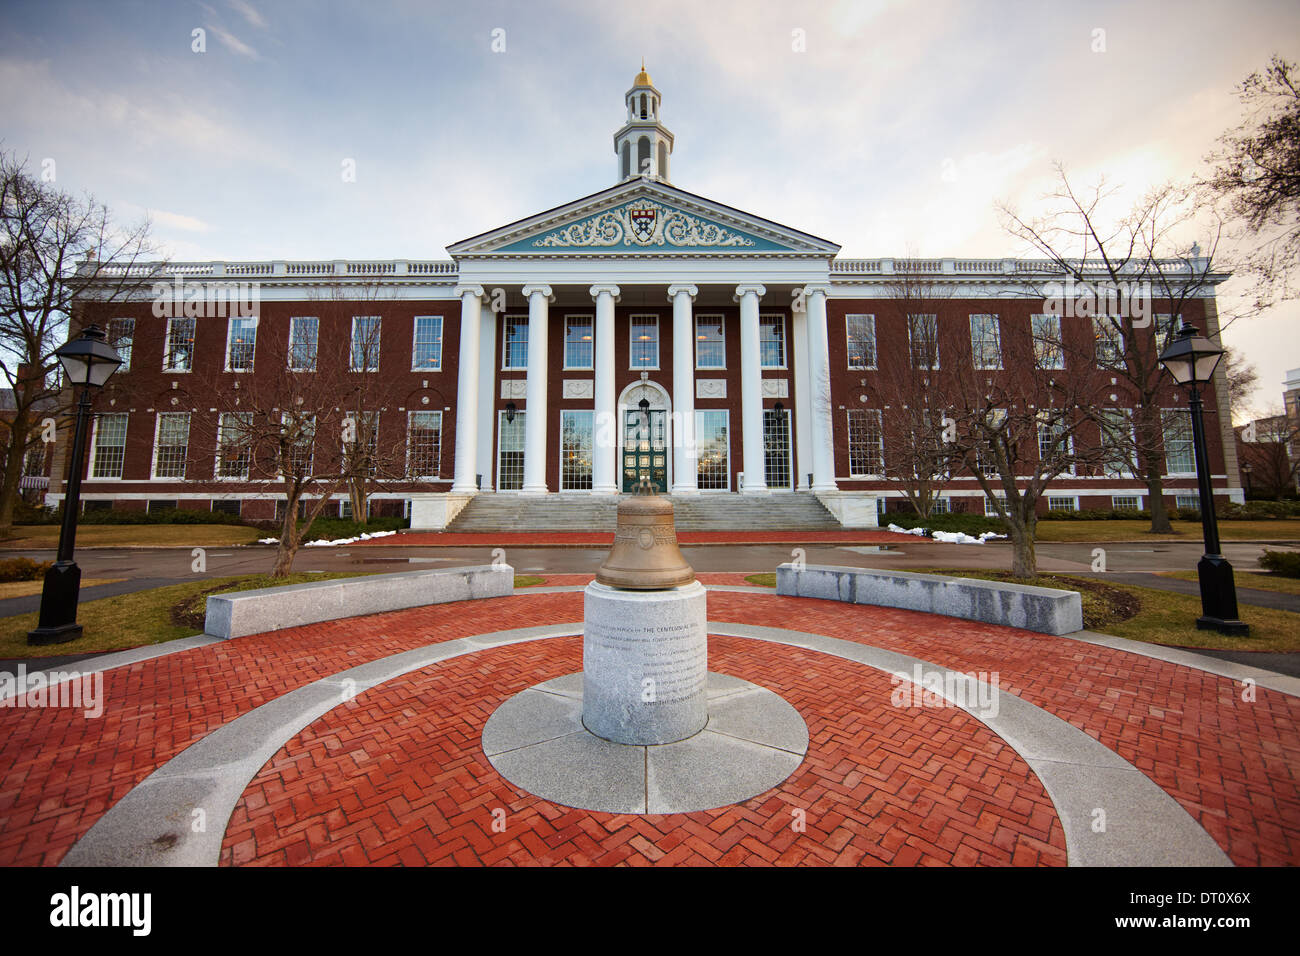 06.04.2011, USA, Harvard University, Bloomberg - Stock Image